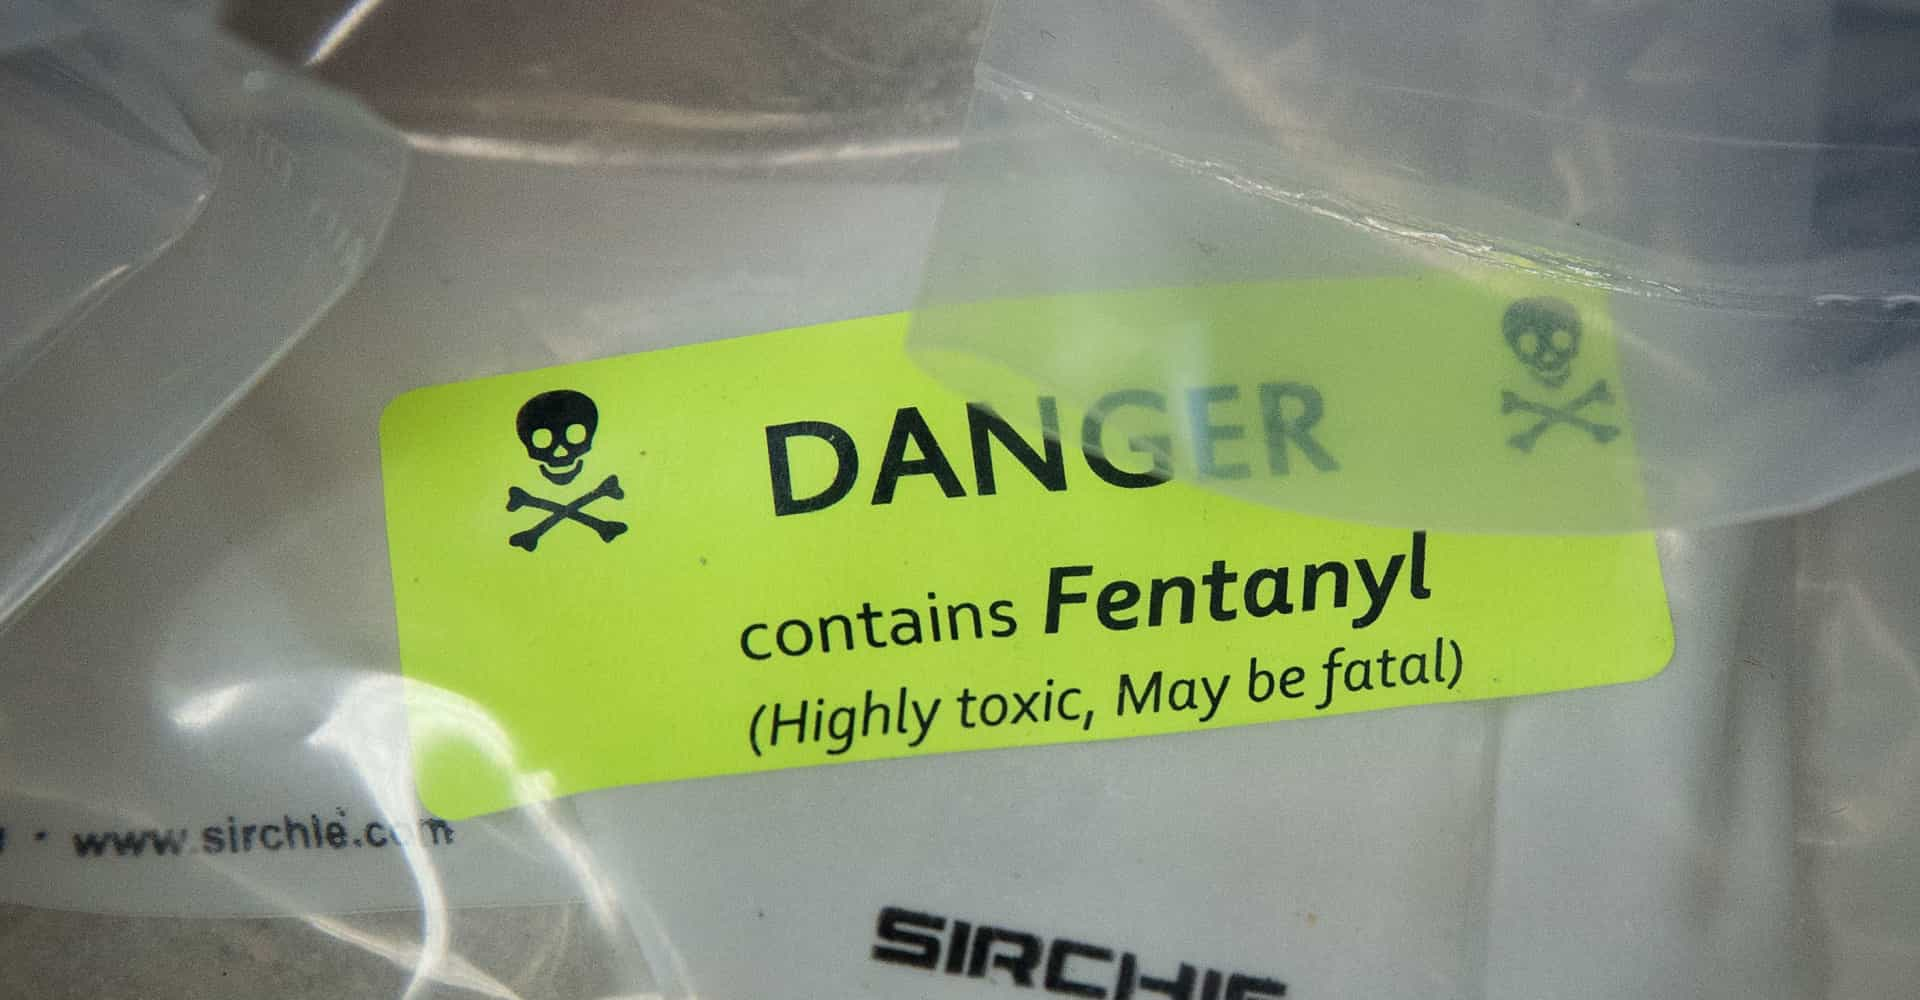 What is fentanyl and why should the UK be worried?